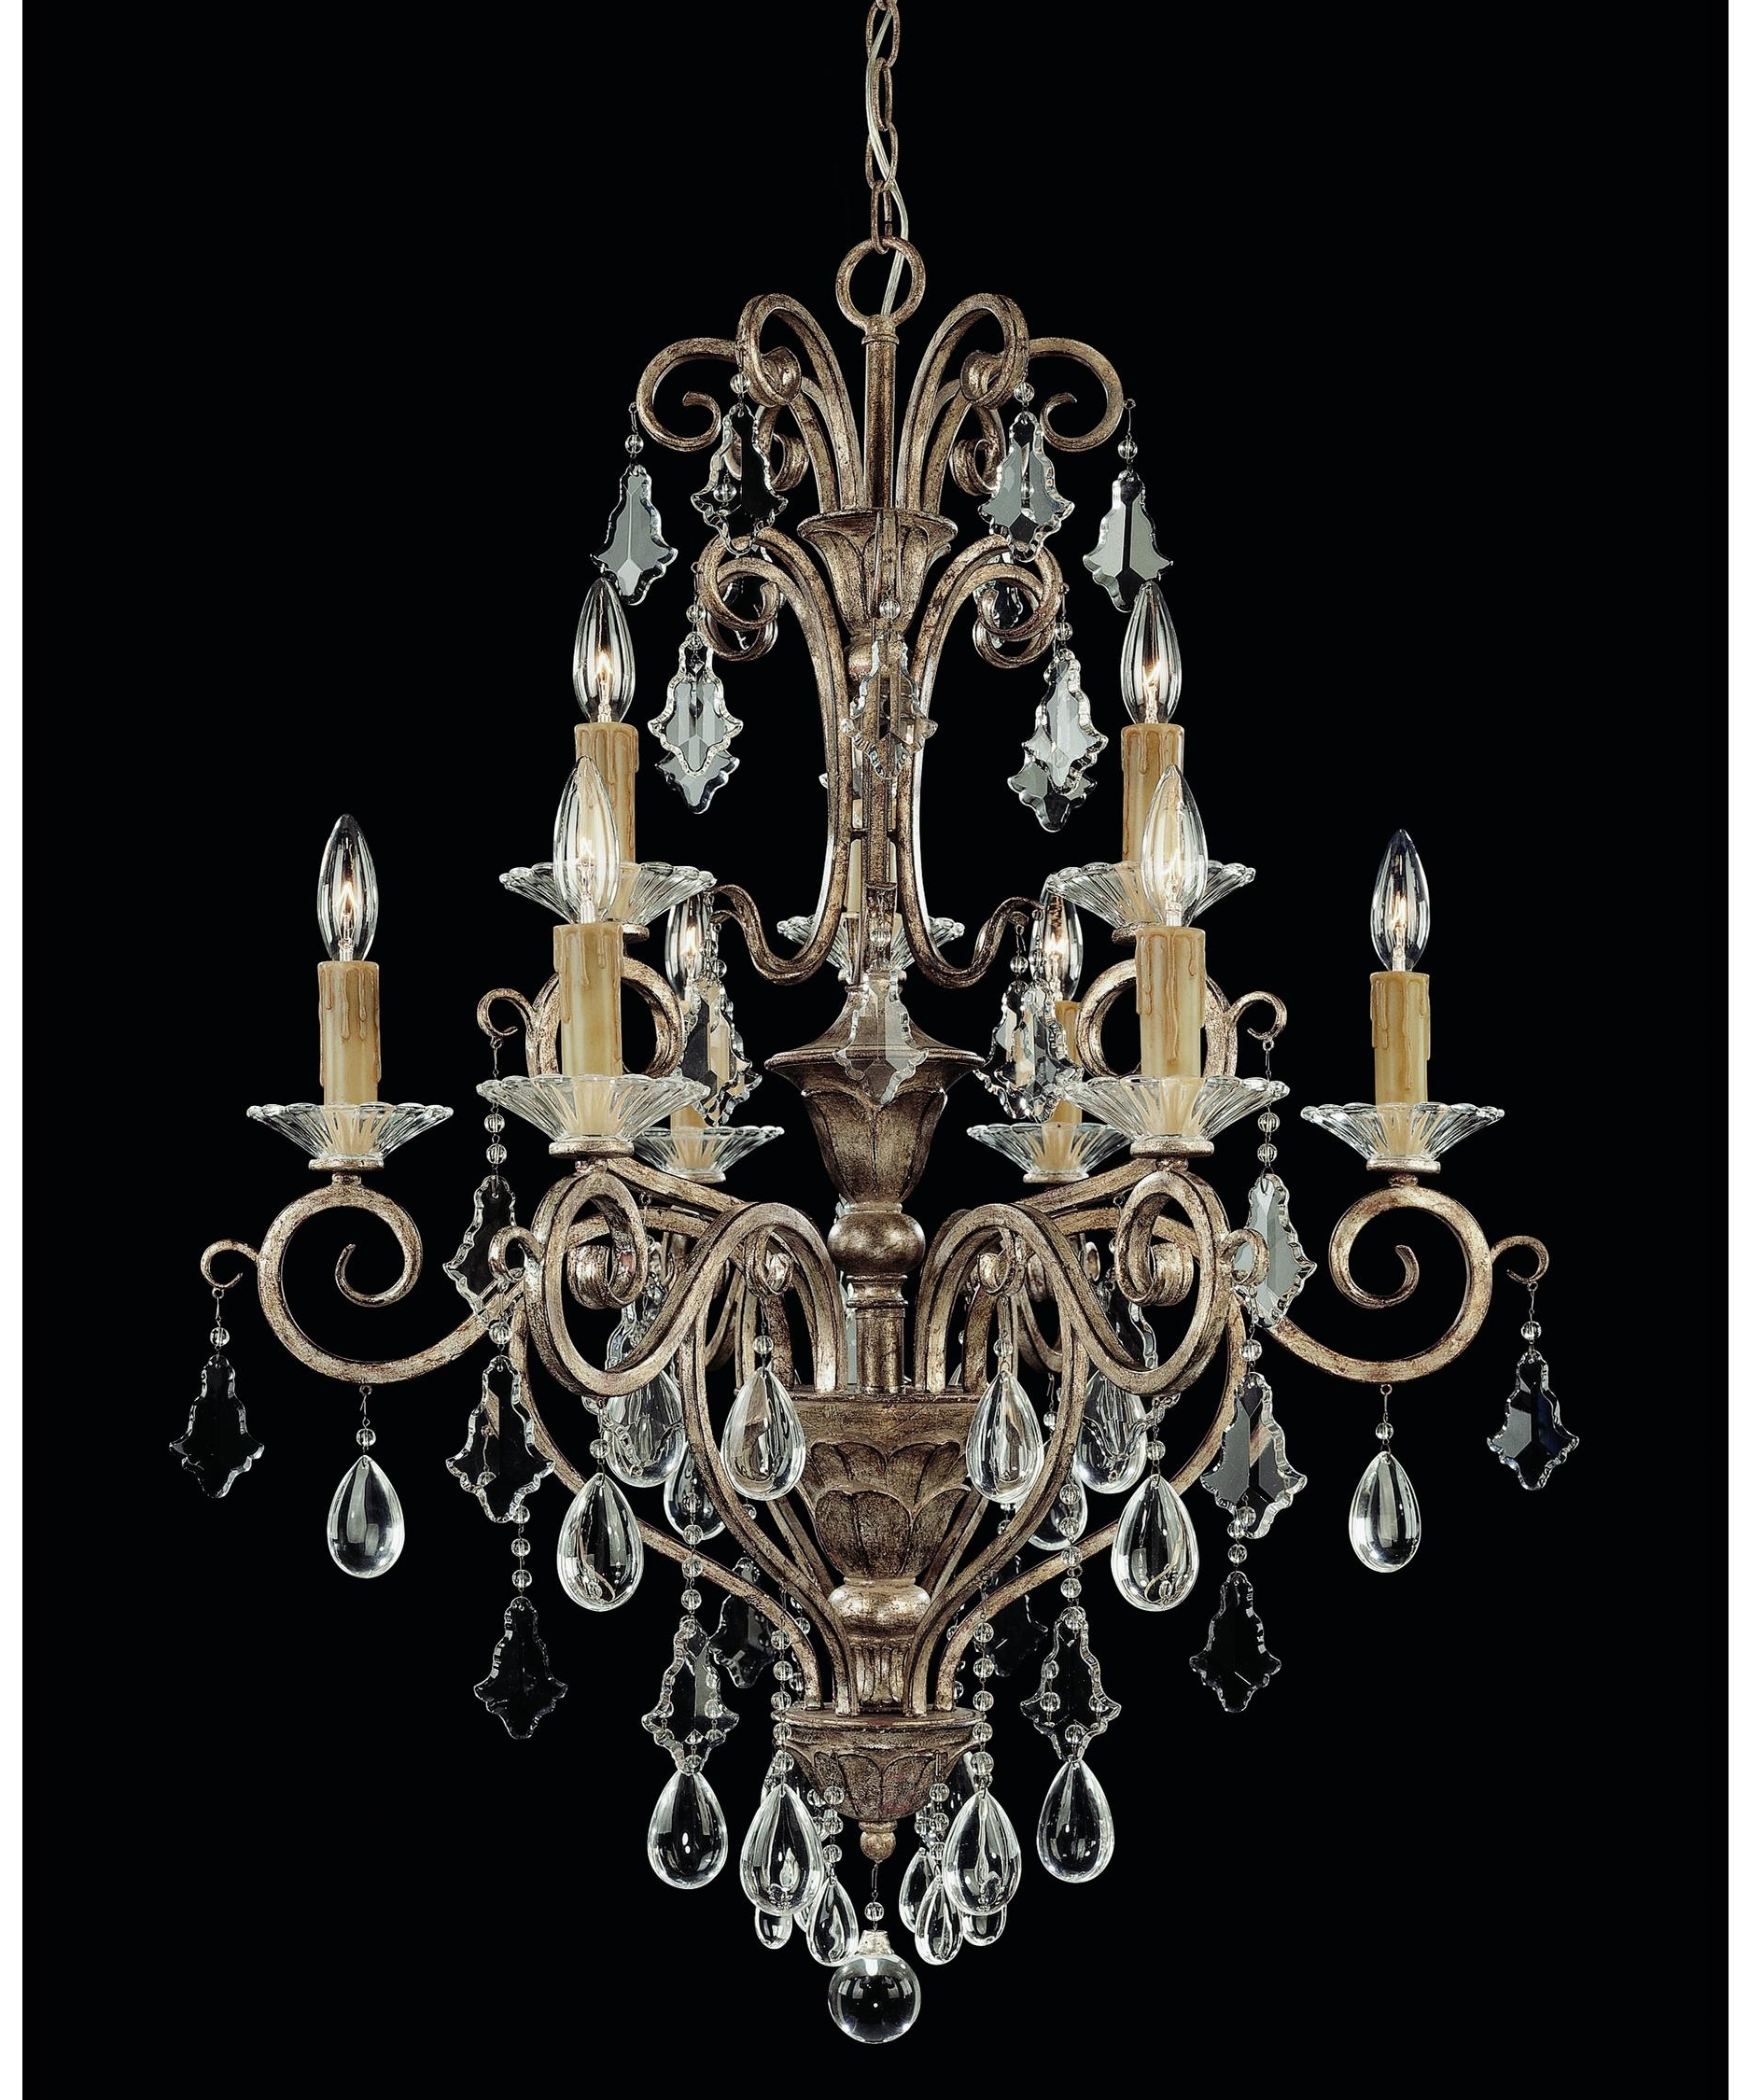 chandelier moooi pin meshmatics beach com pinterest chandeliers morris house